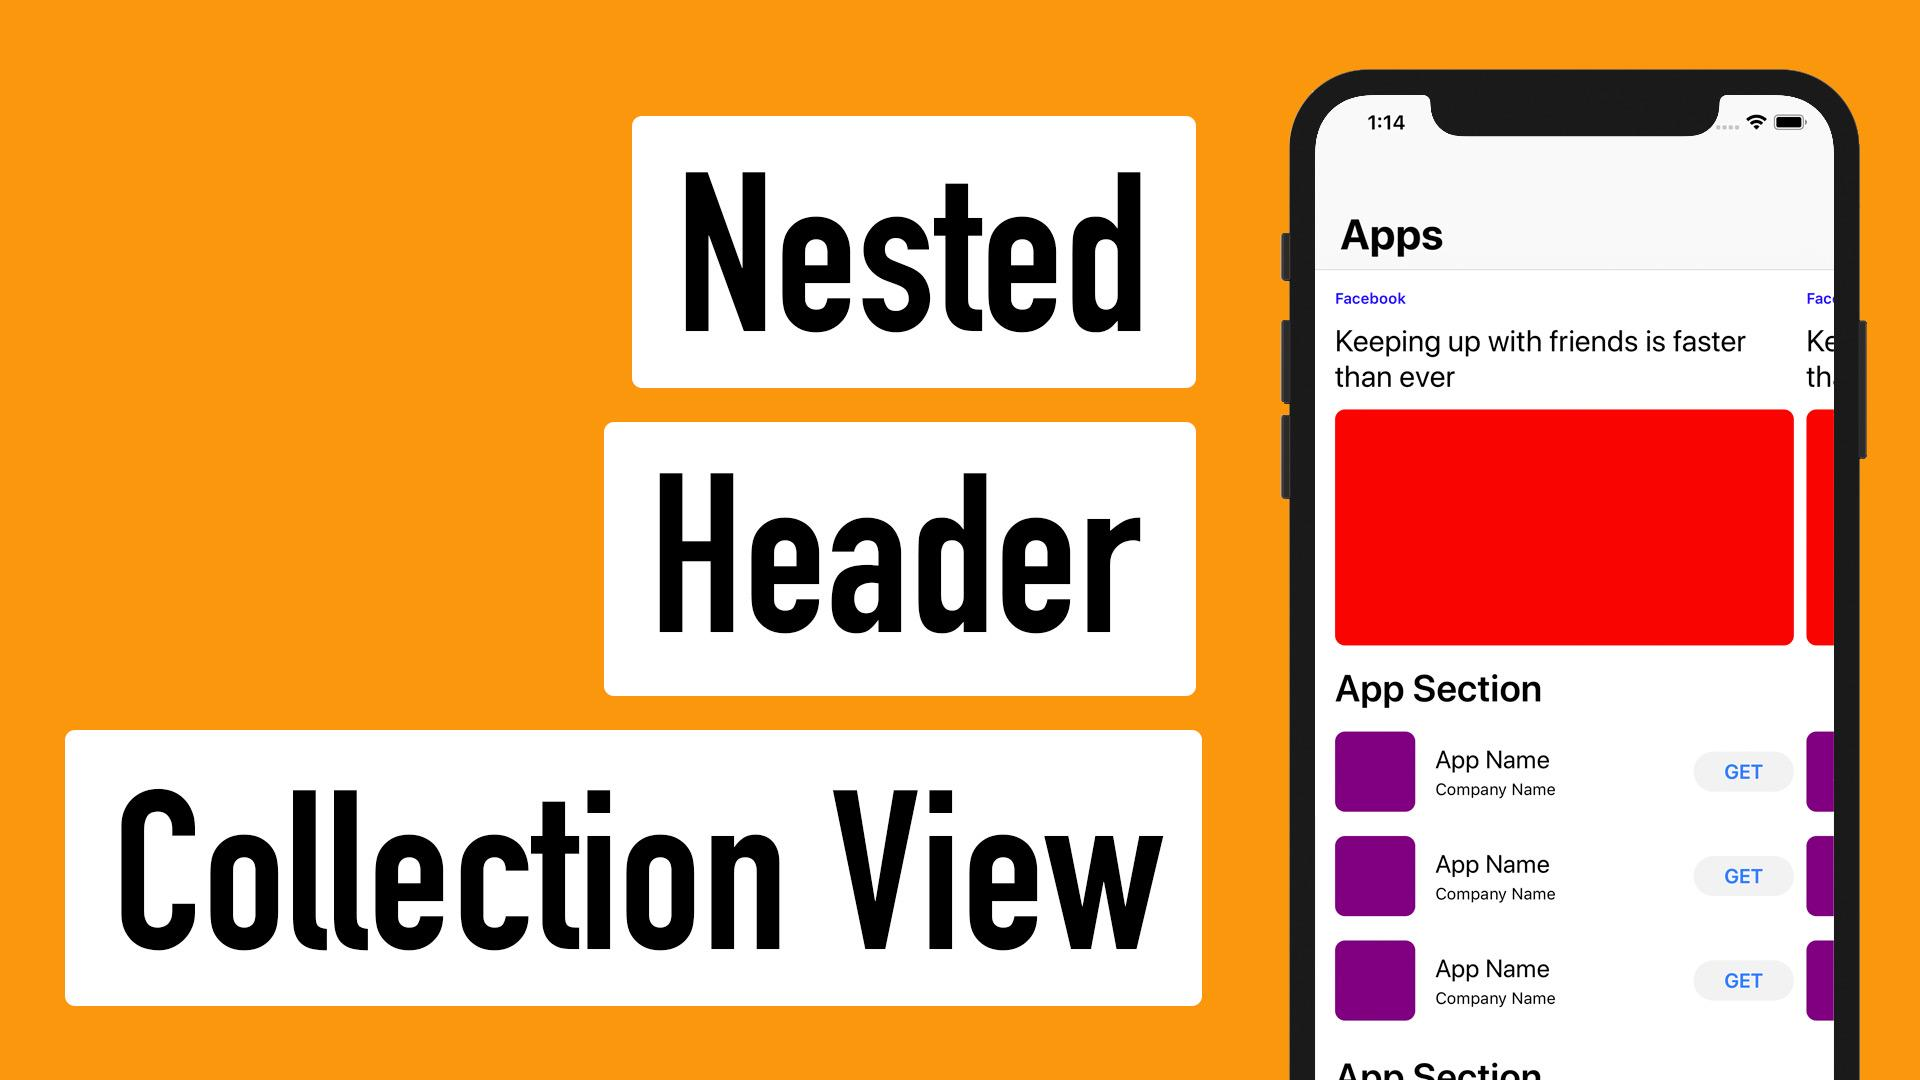 AppStore 12 - Nested Header Collection View | Lets Build